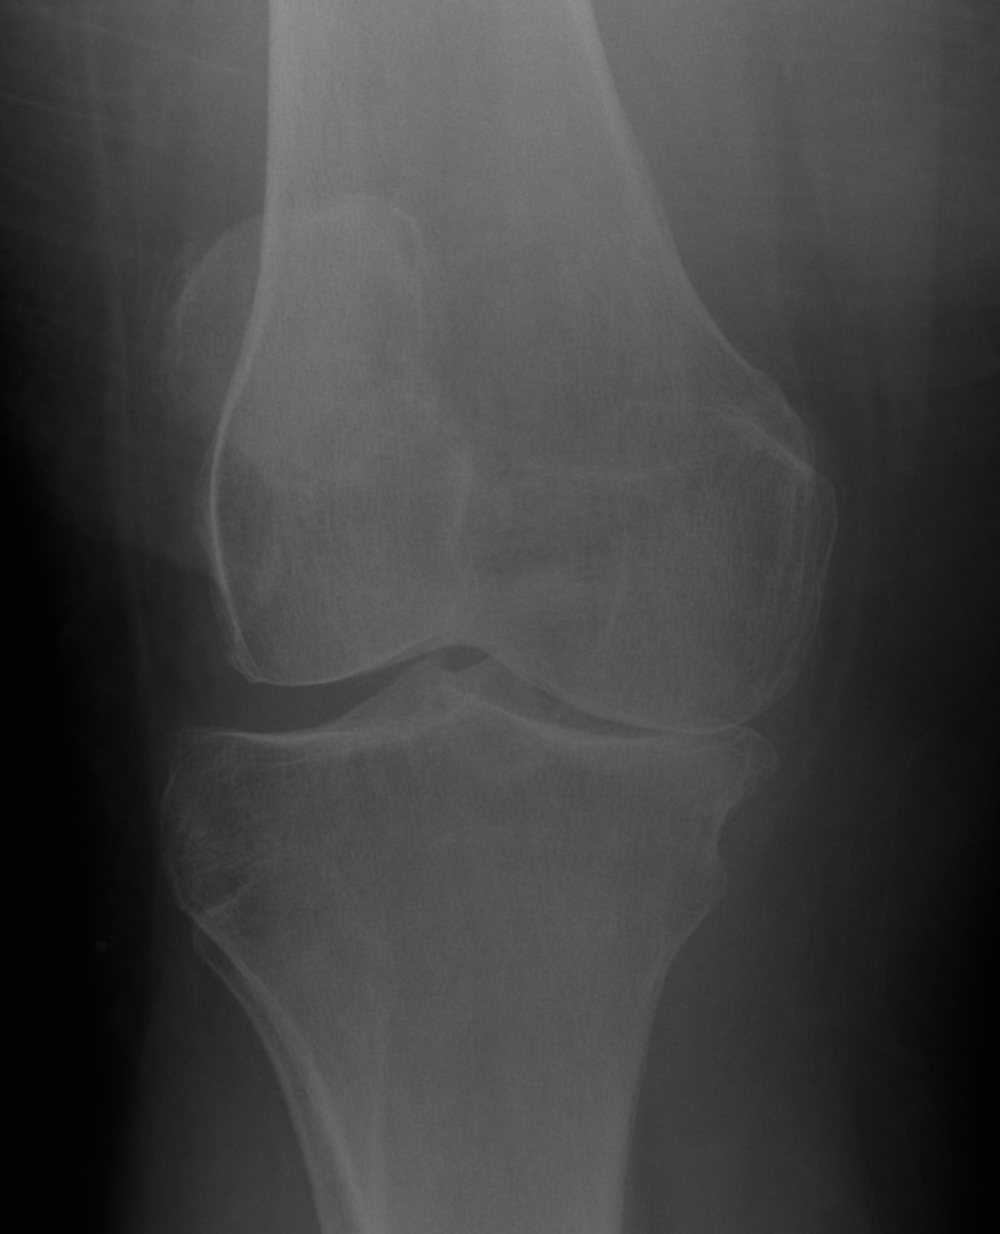 Medial Compartment Knee arthritis